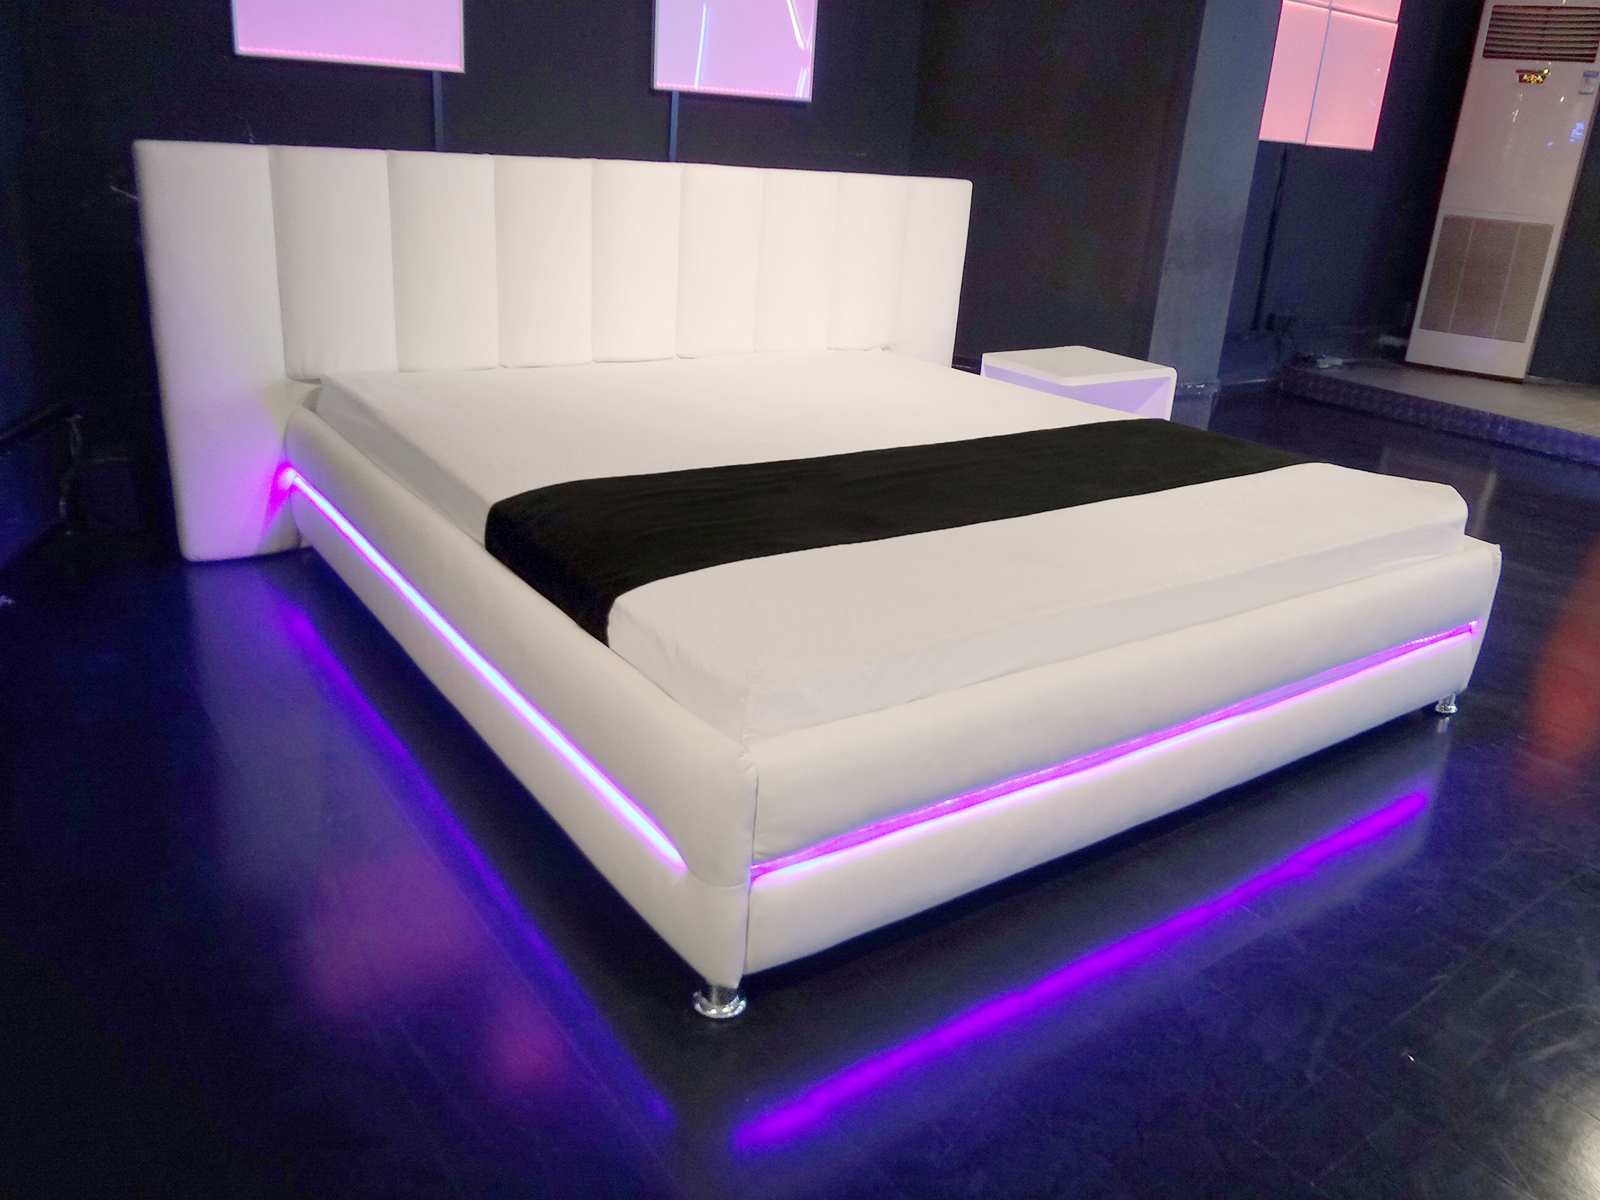 sam polsterbett 180 x 200 cm wei las vegas led. Black Bedroom Furniture Sets. Home Design Ideas